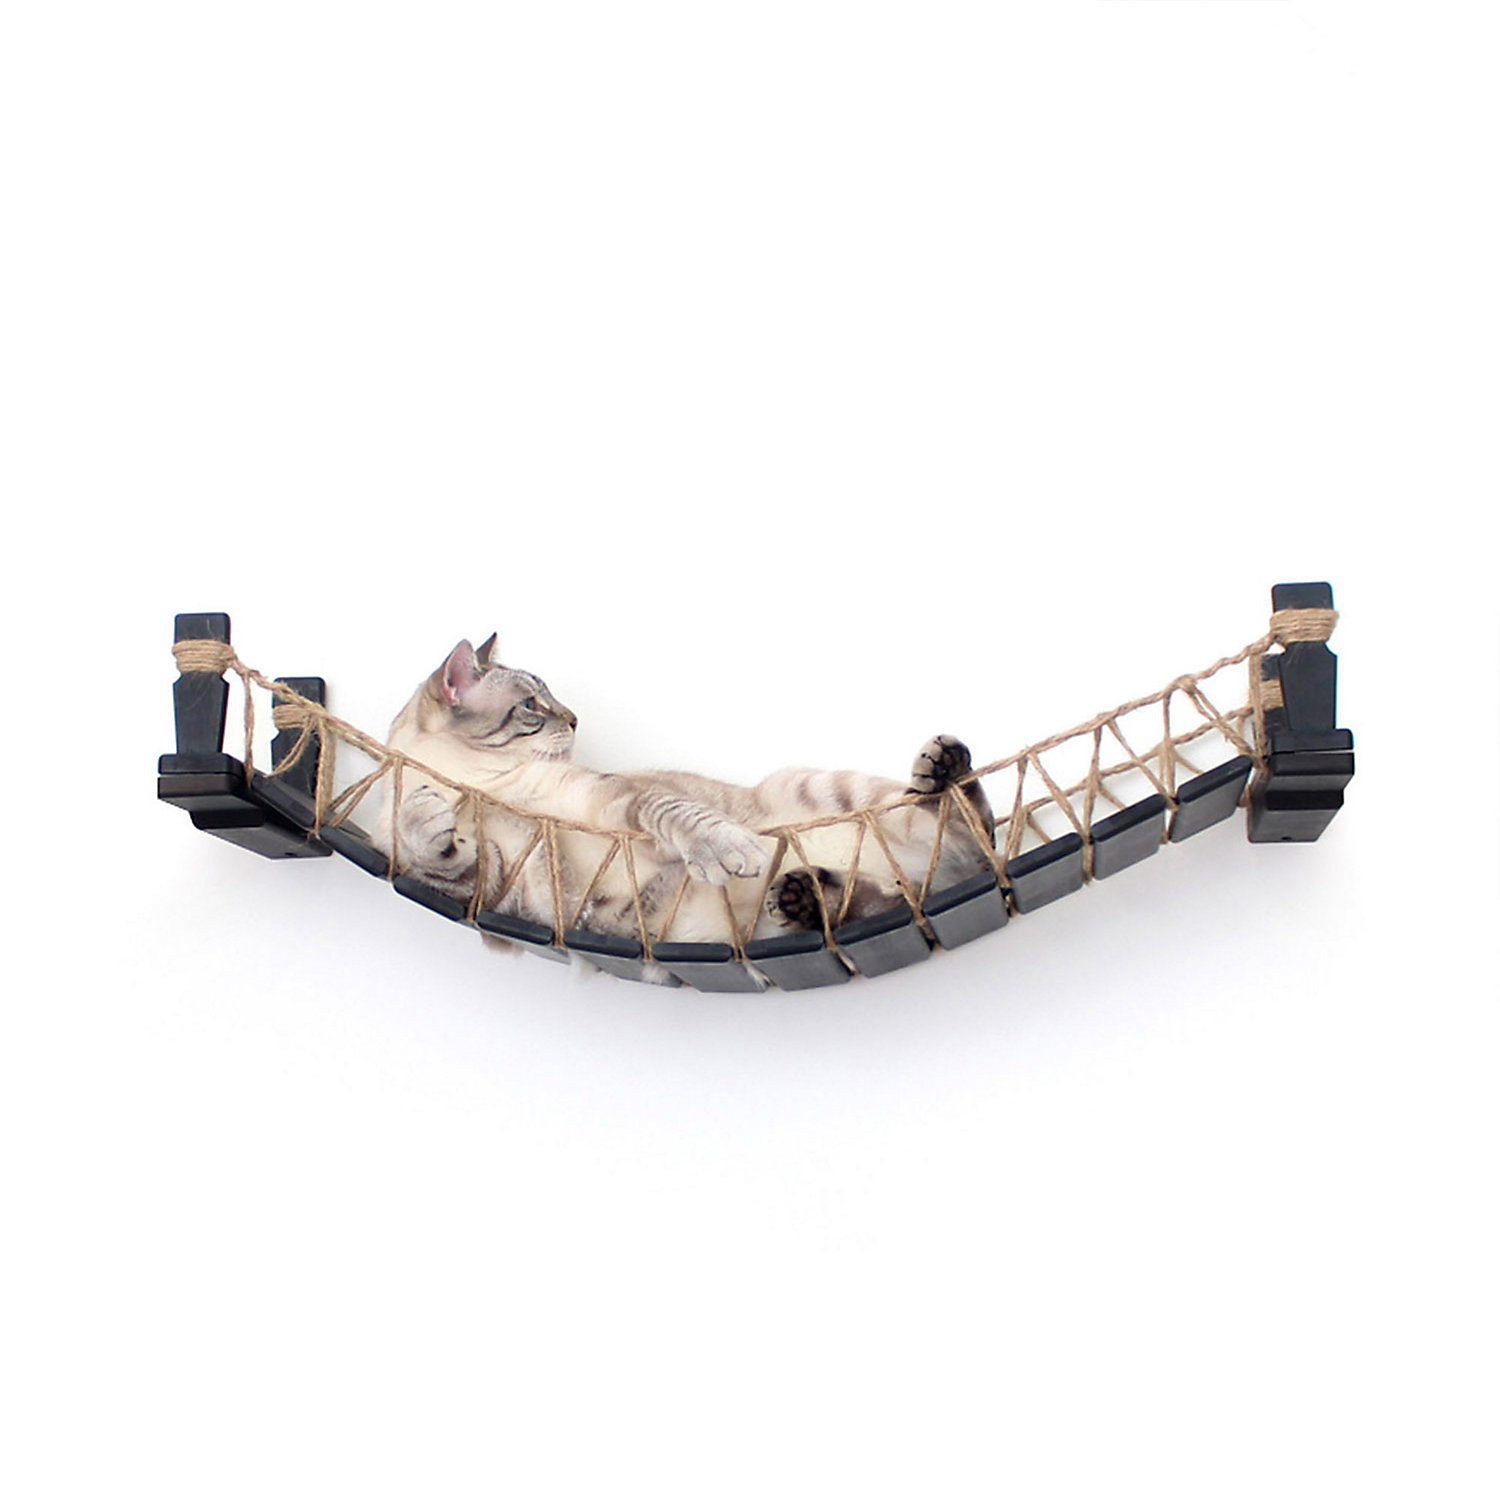 CatastrophiCreations The Cat Mod Bridge Lounge Hammocks for Cats in English Chestnut